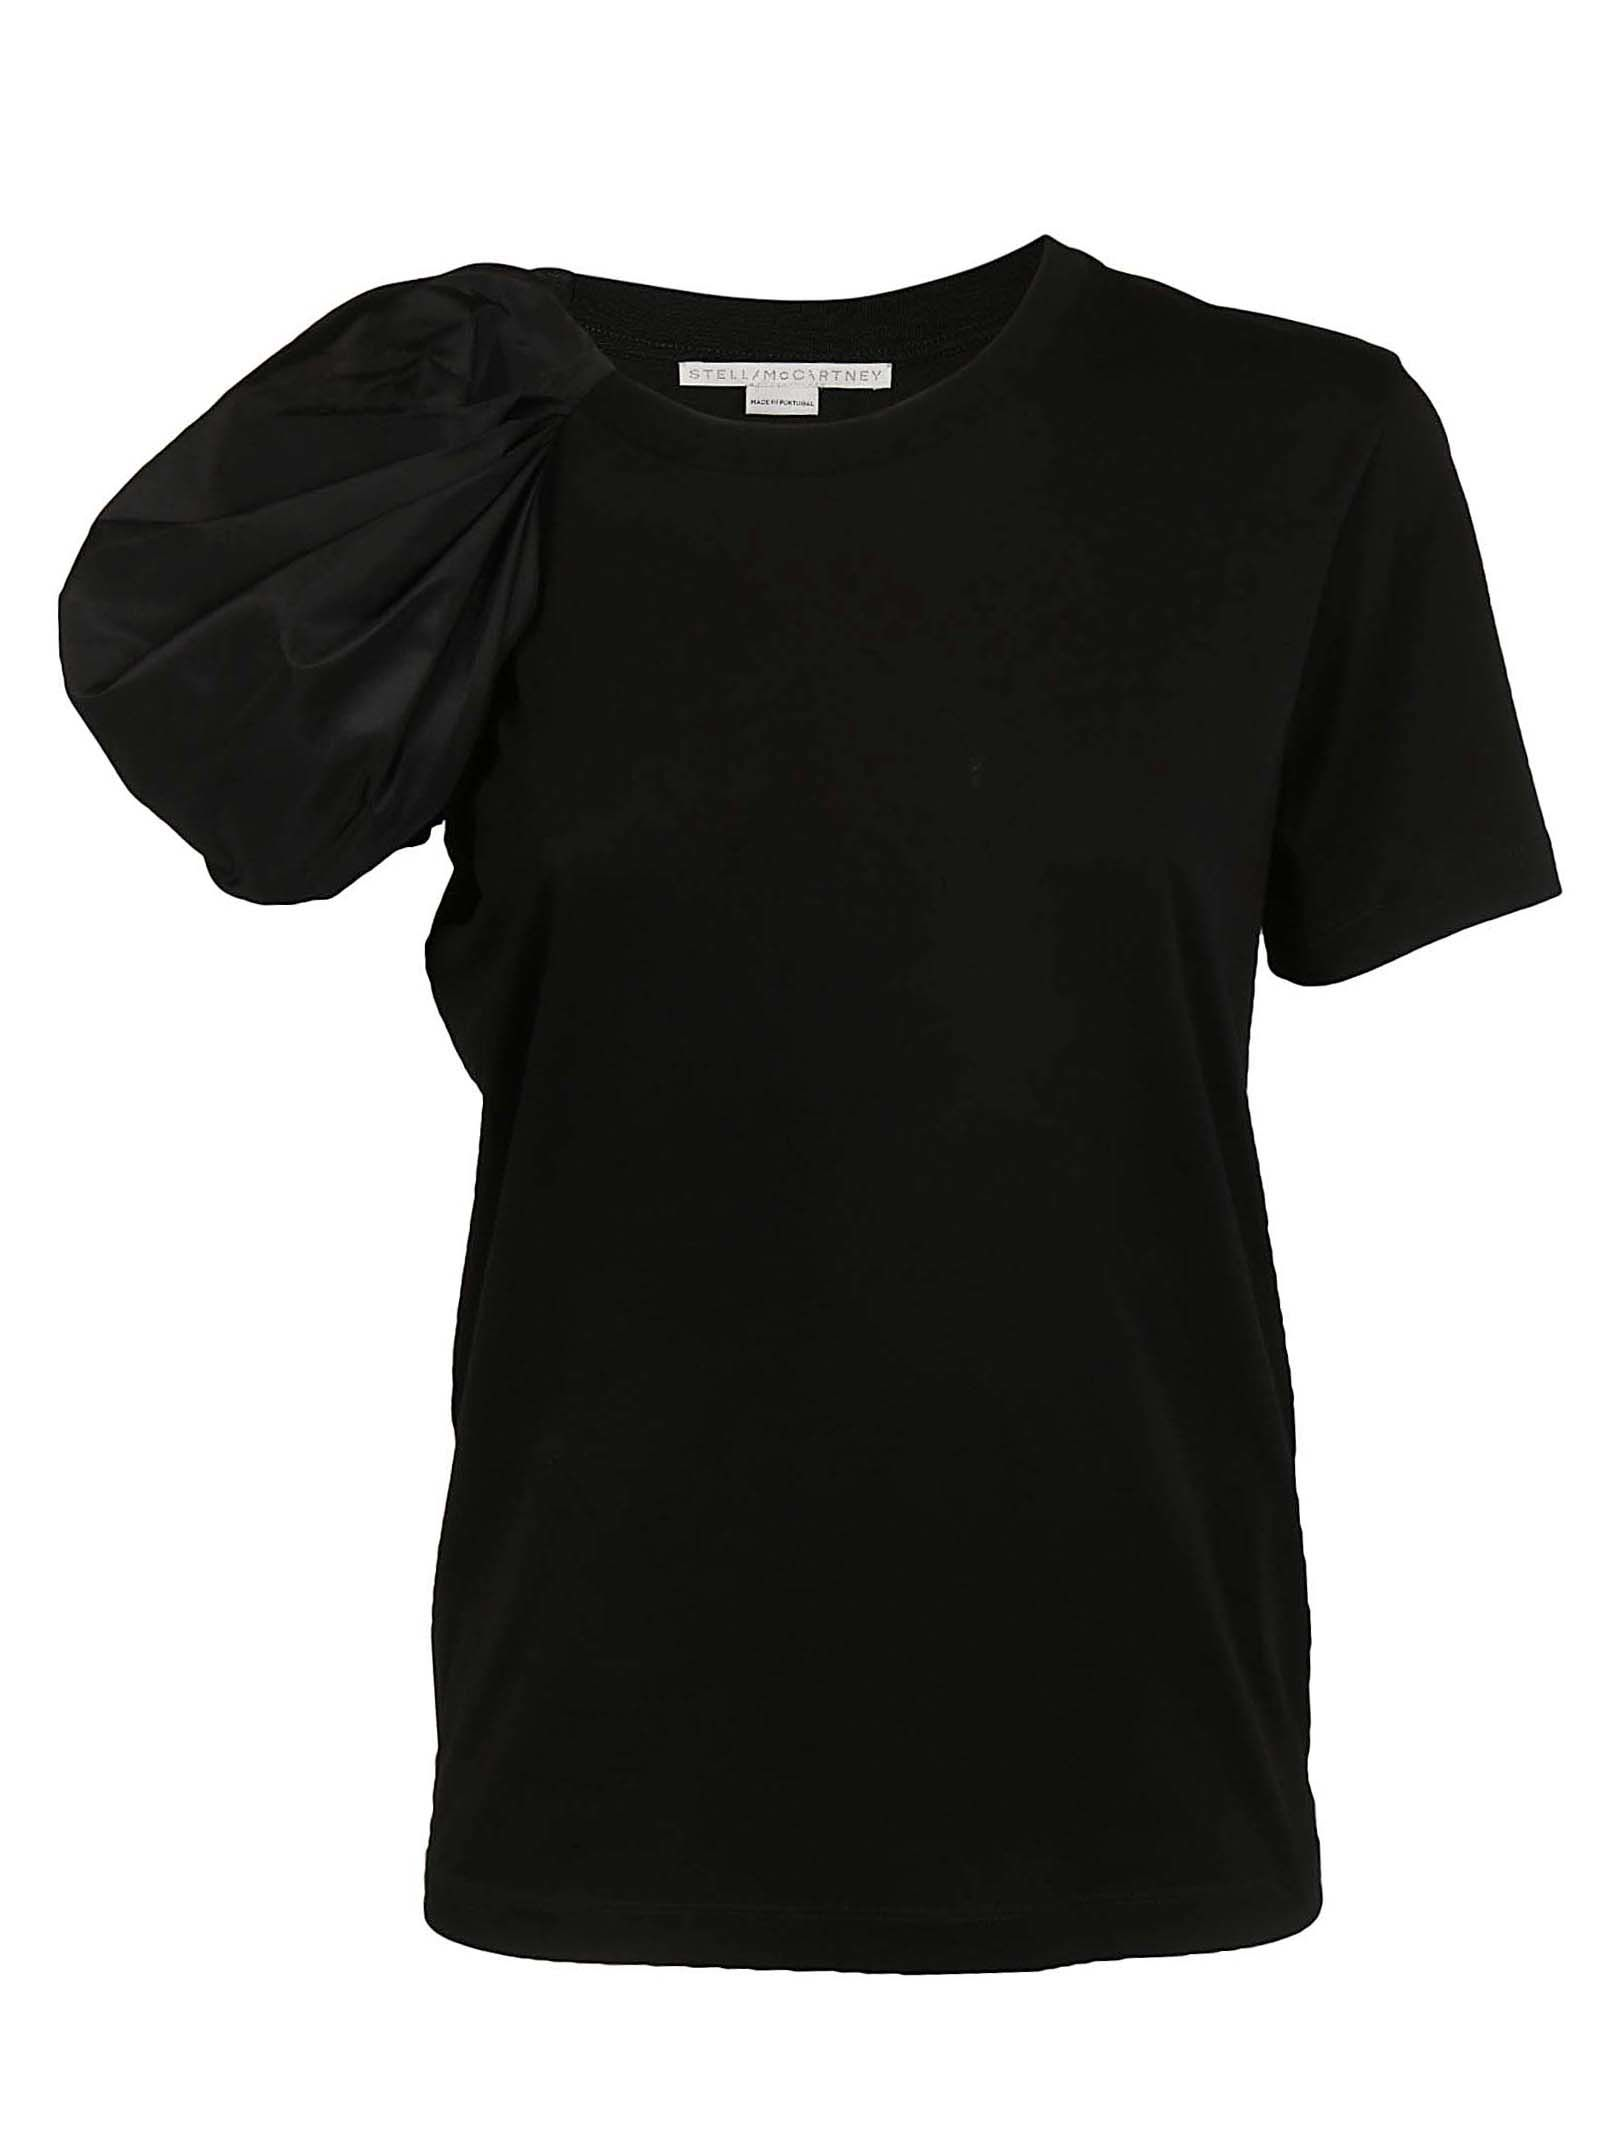 STELLA MCCARTNEY ASYMMETRIC SLEEVE T-SHIRT